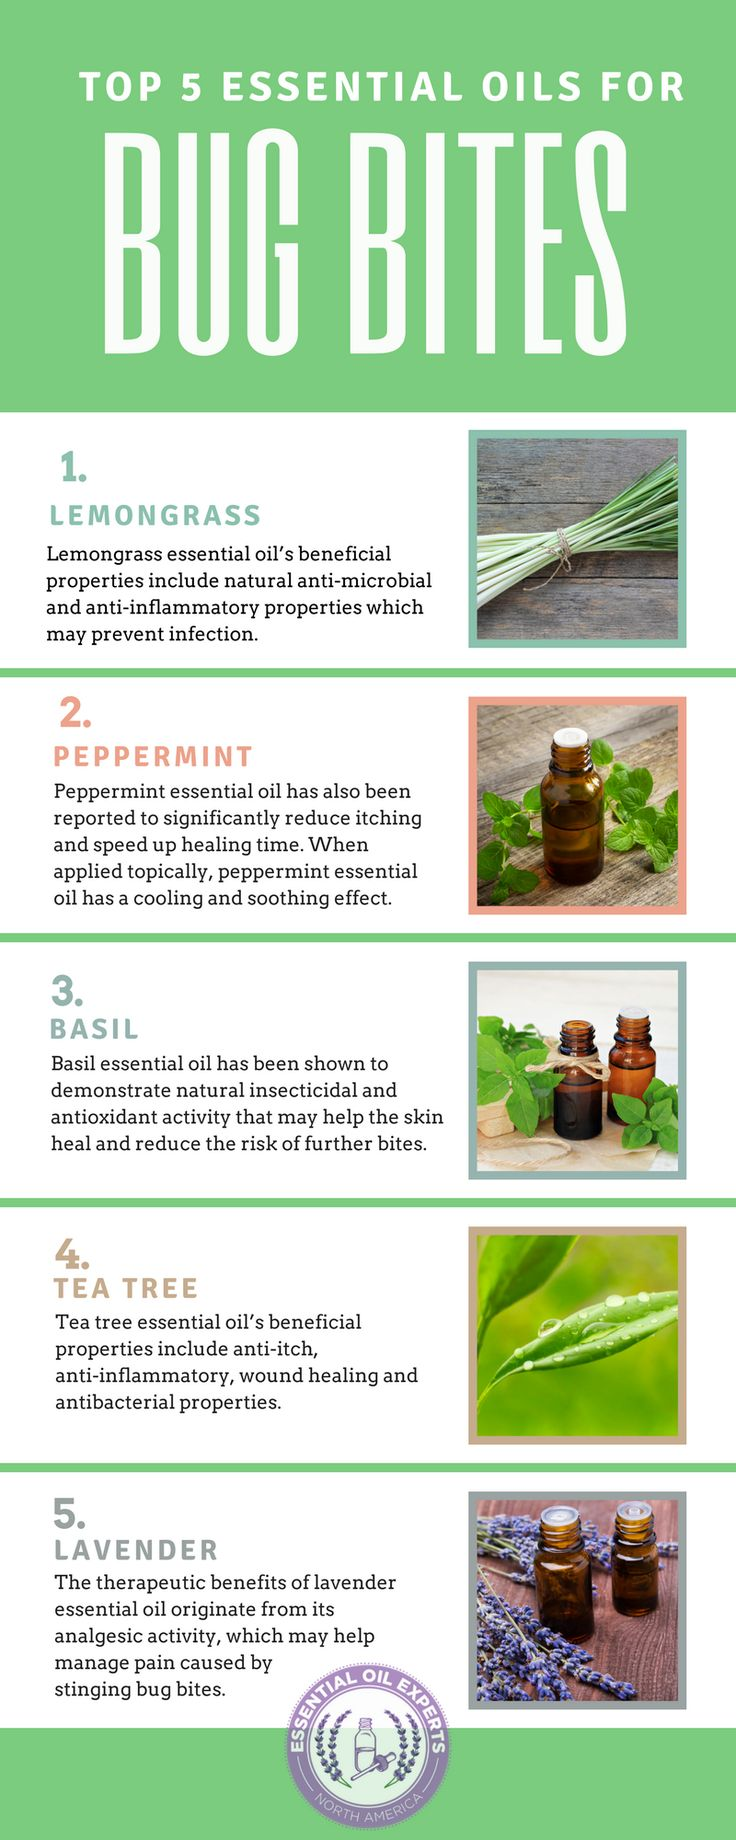 Best 25 Homemade Spider Spray Ideas On Pinterest  Natural Bug Cool How To Get Rid Of Spiders In Bedroom Design Ideas